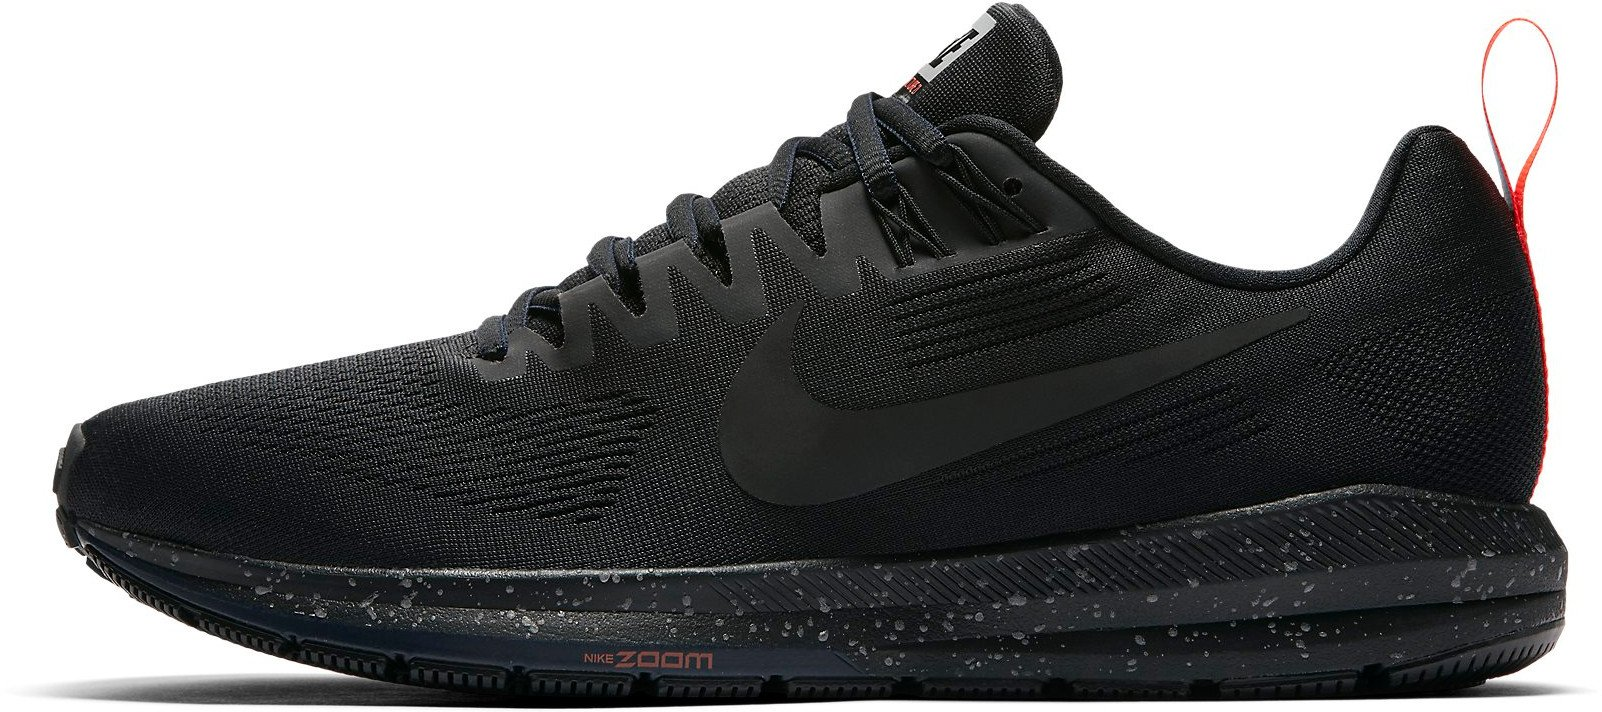 Nike Discount Code for November ️ Get money off fitness gear, footwear, fashion & more with MyVoucherCodes ️ Grab a Nike discount code for money off your next pair of trainers and just do it!